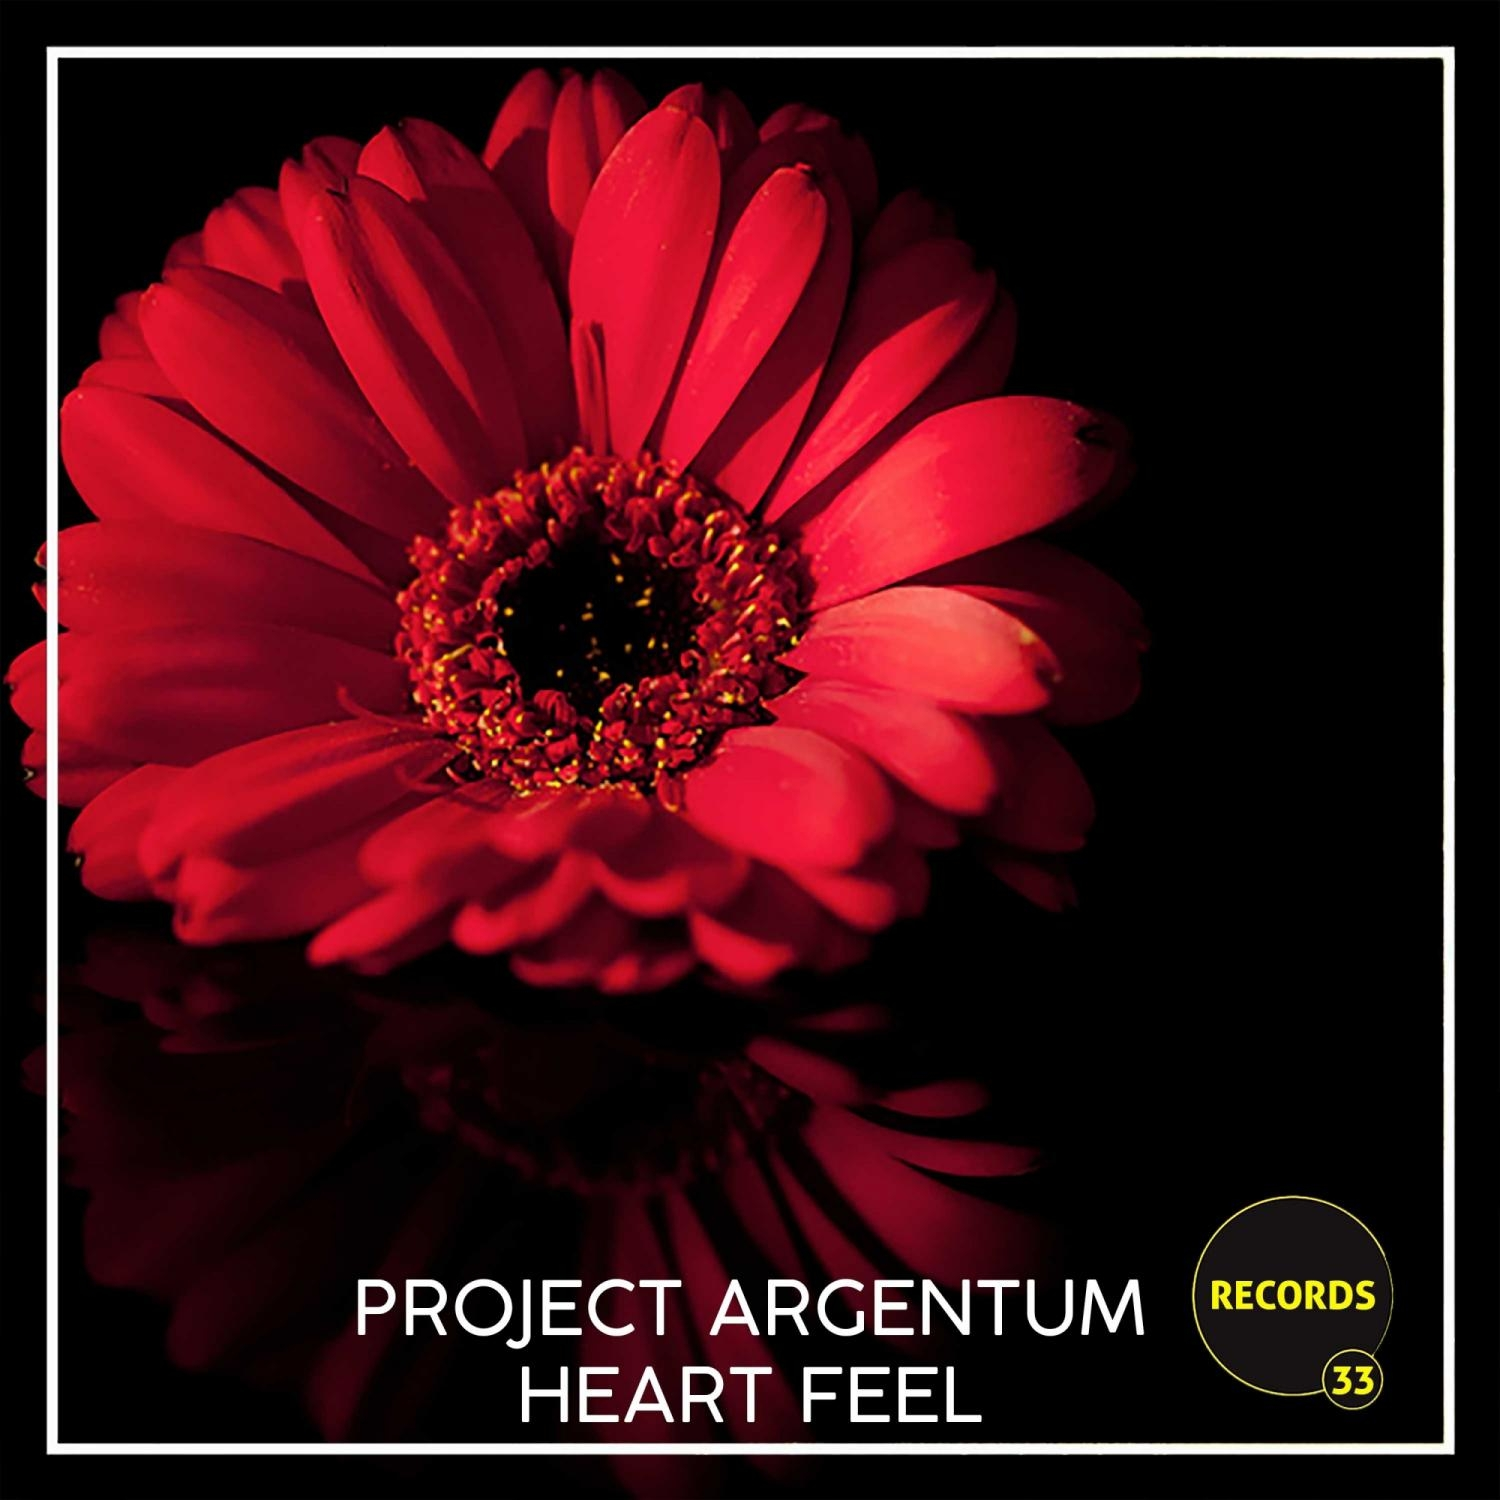 Project Argentum - Heart Feel  (Original Mix)